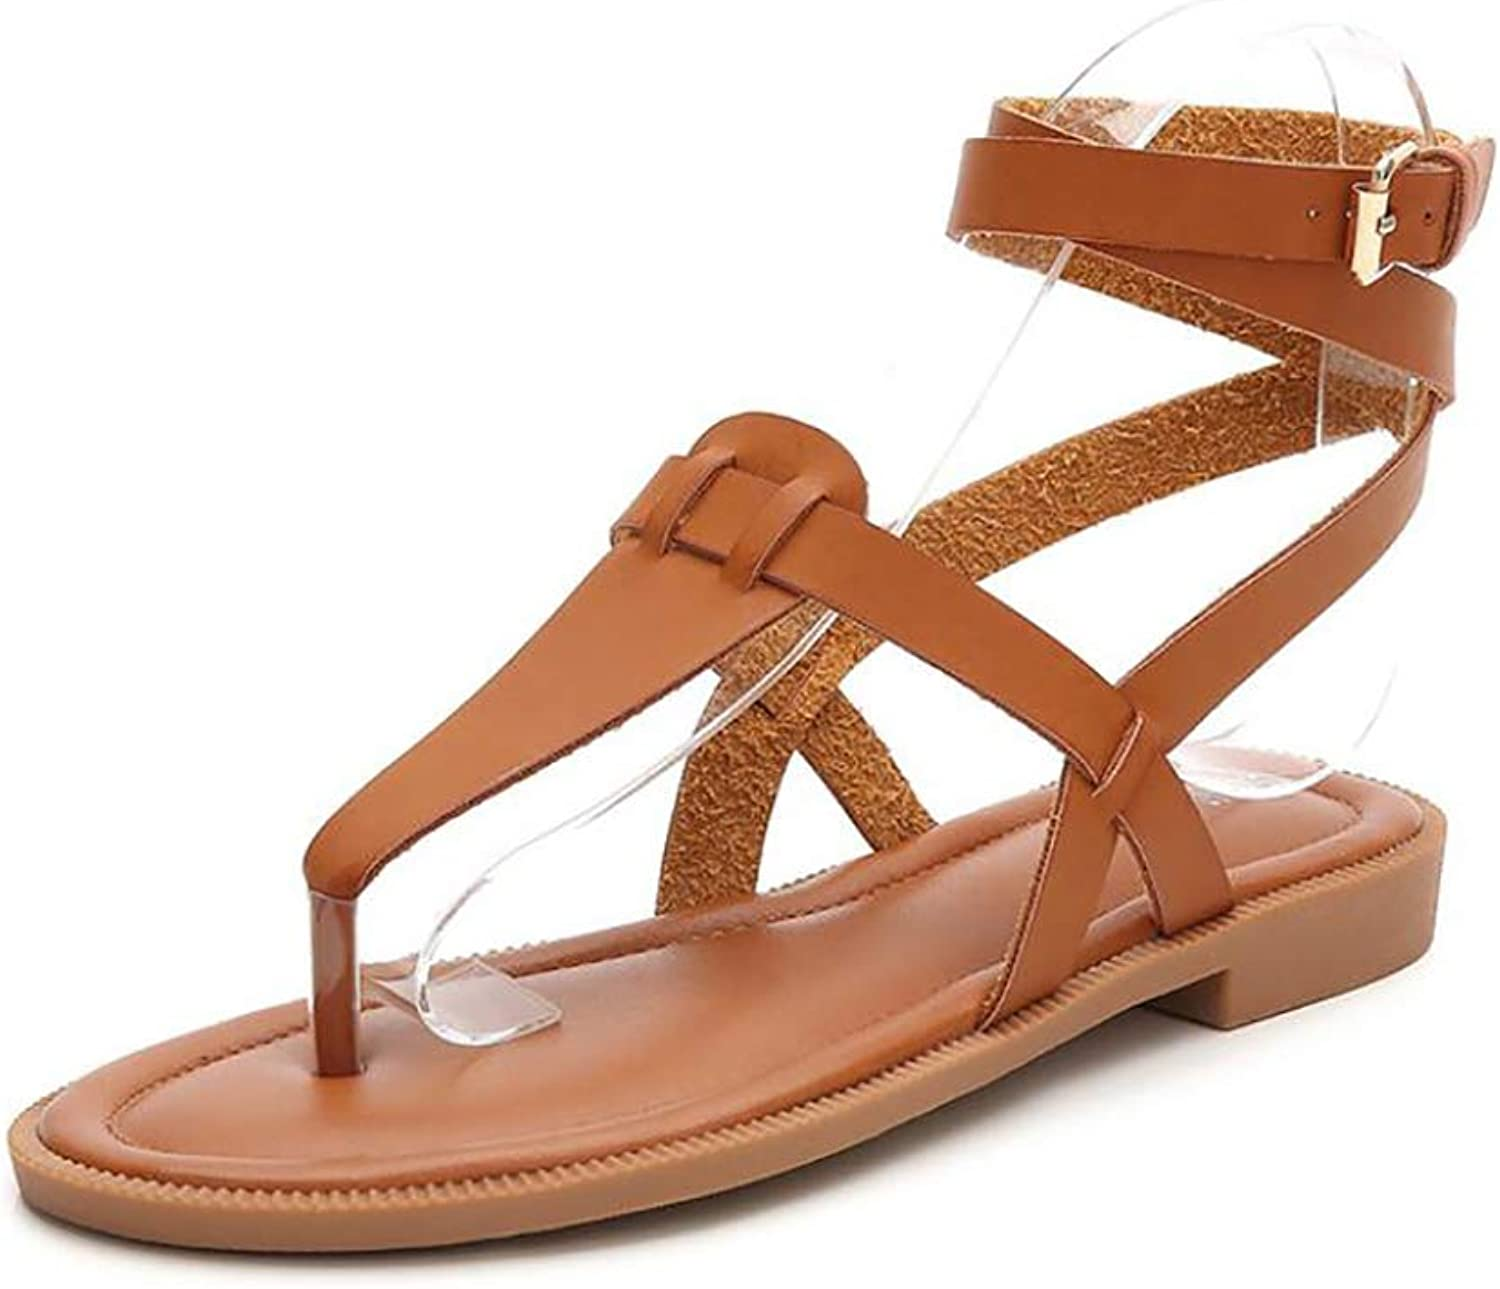 Summer Bohemia Flat Sandals Flip-Flops Rome Strap Buckle Open Toe Casual Cool Cozy Beach Slippers,Brown,40